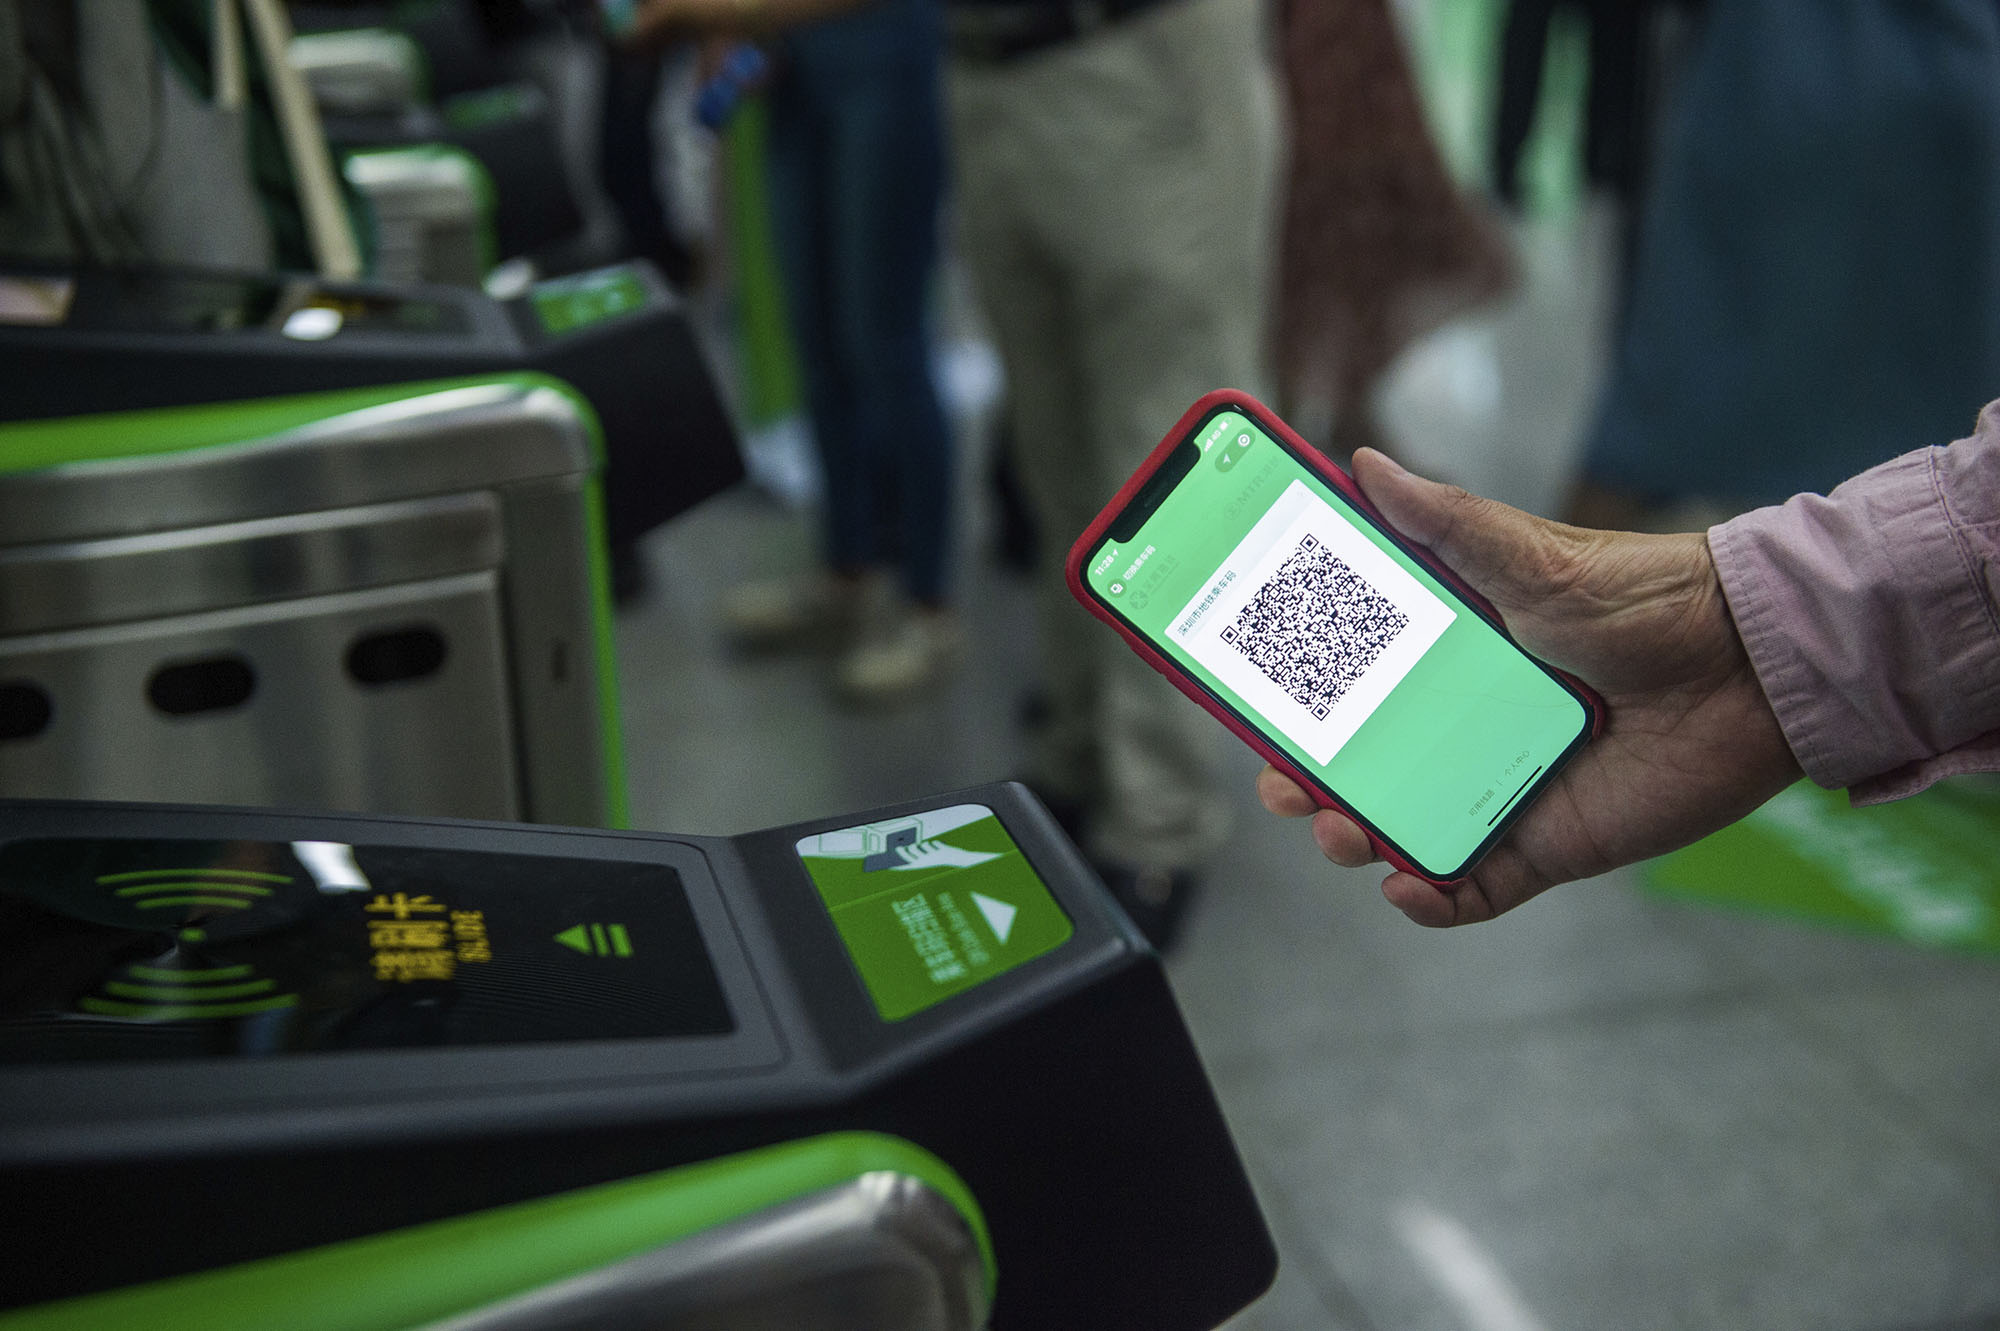 A transit rider uses their phone to pay a fare using WeChat pay.